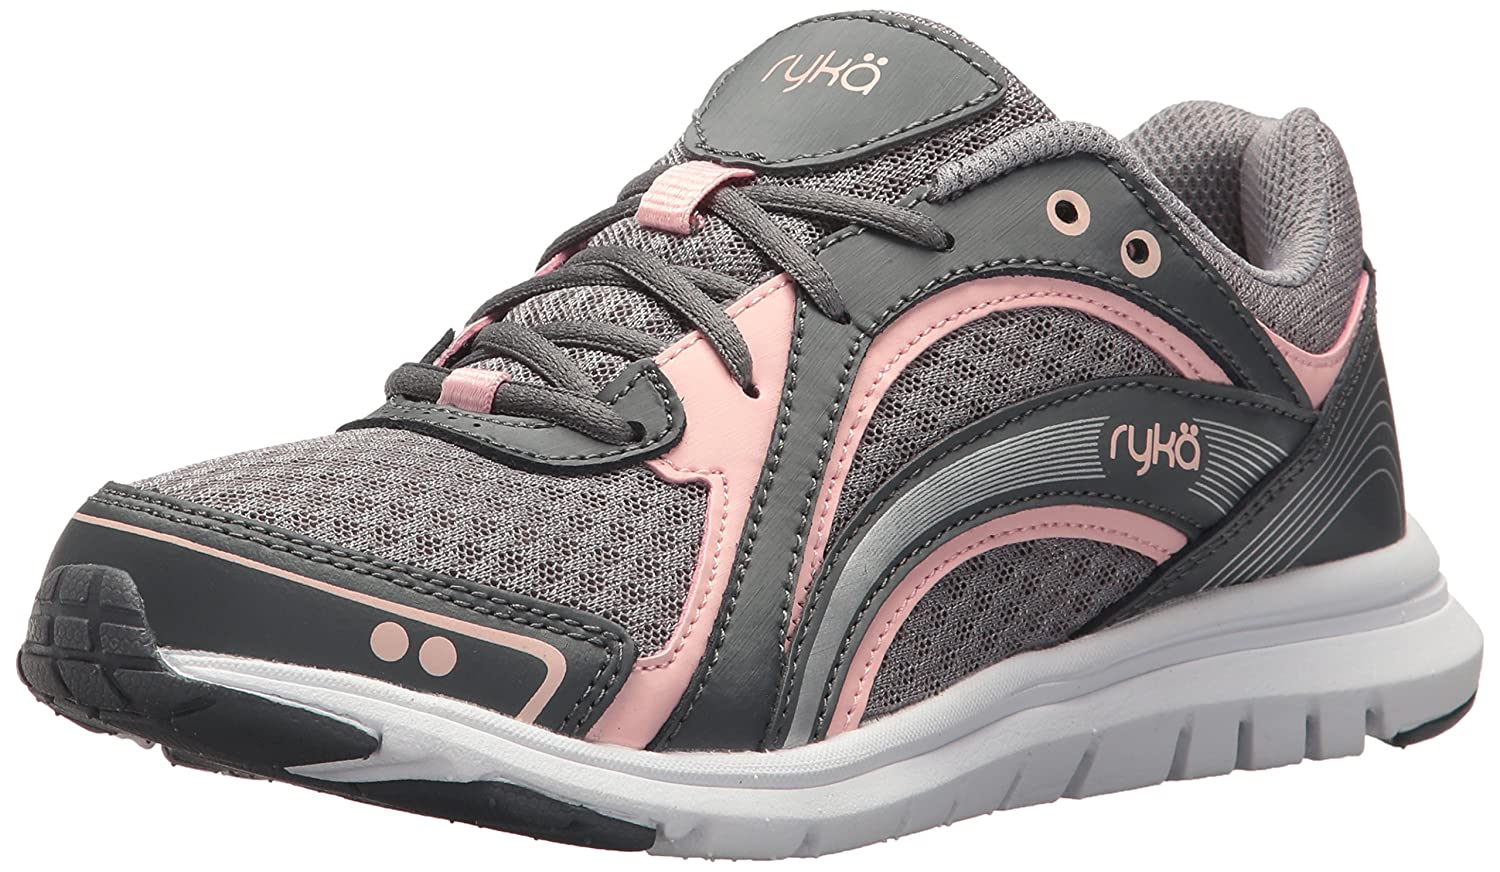 Ryka Women's Aries Walking Shoe B075MKR3F7 5.5 B(M) US|Grey/Rose